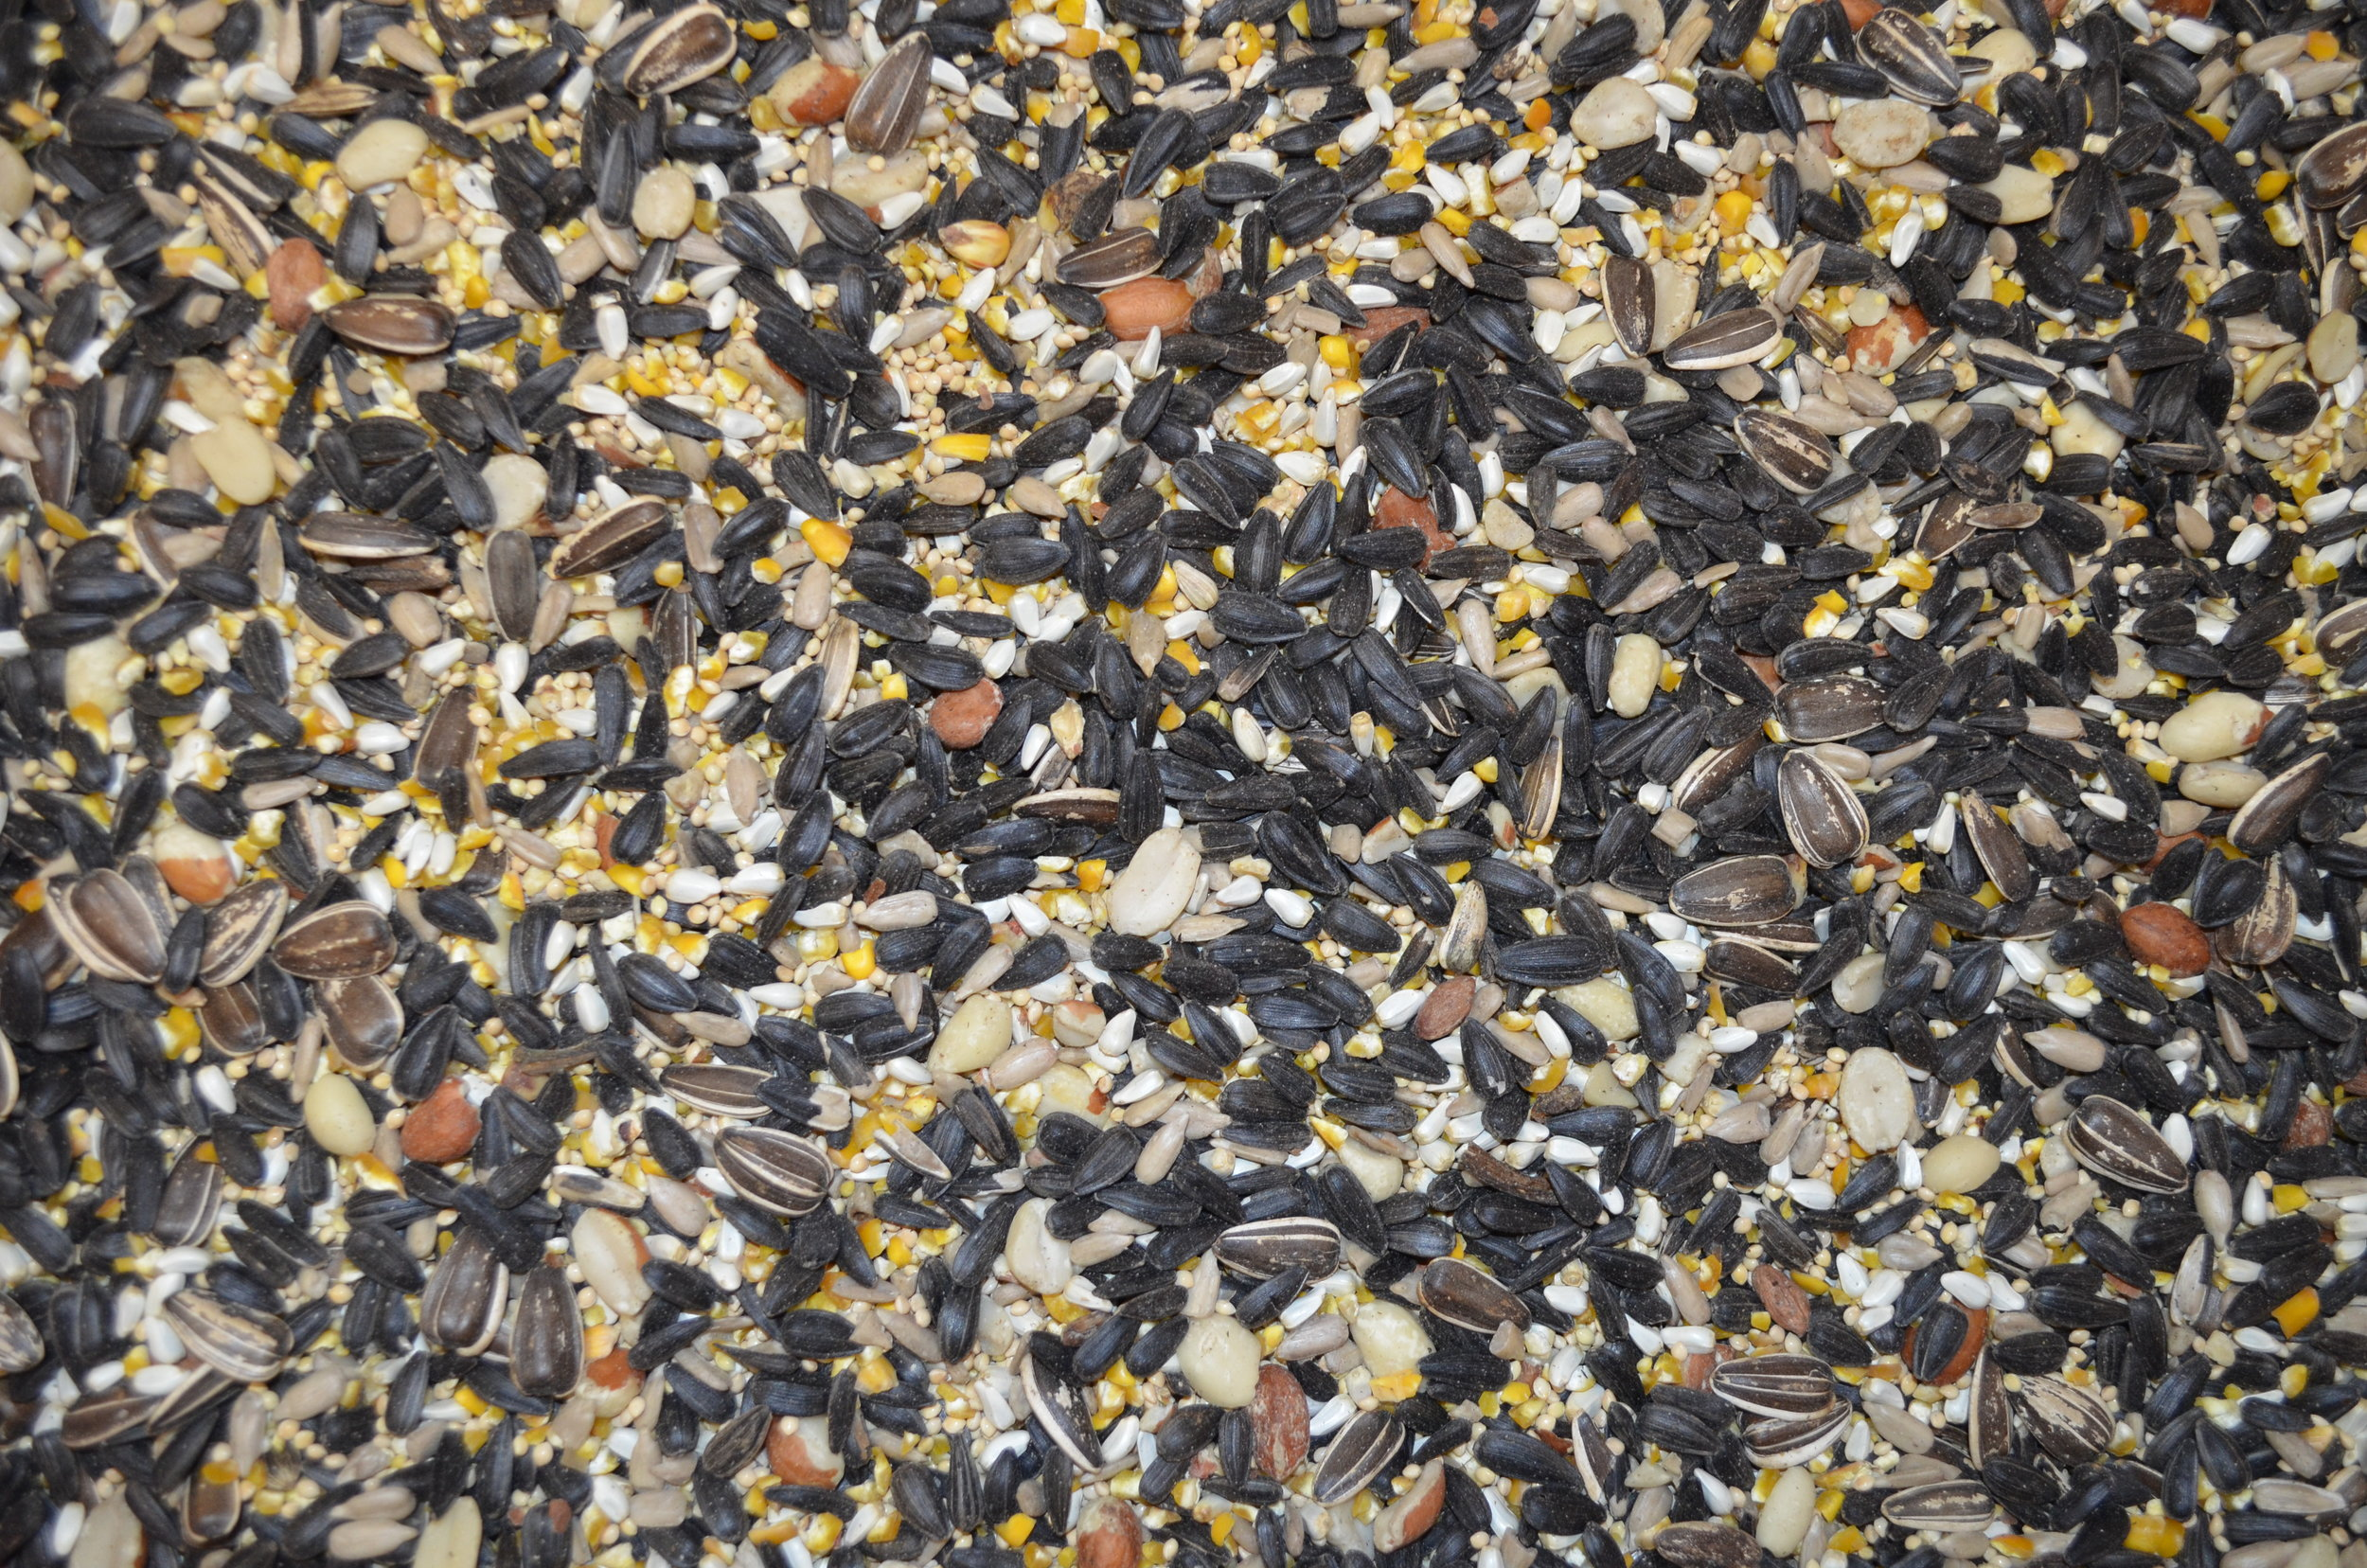 Connection Special  Sunflower Seeds, Non-GMO Cracked Corn, White Proso Millet, Peanuts Hearts, Hulled Sunflowers, Safflower  OUR MOST POPULAR MIX ! LOVED BY MOST BIRDS !